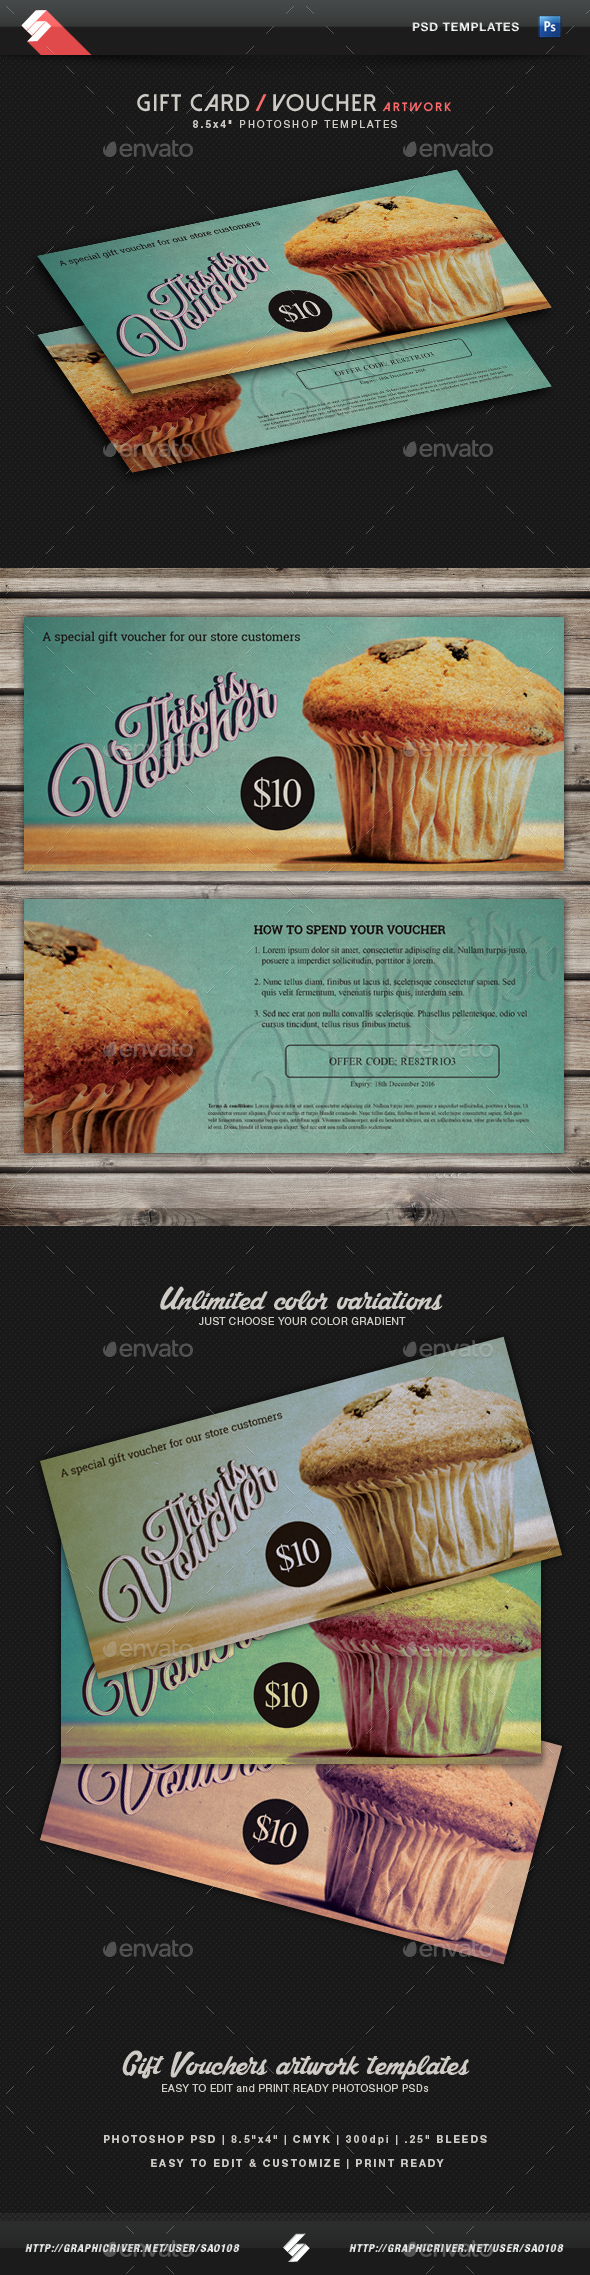 Retro Gift Voucher Template - Loyalty Cards Cards & Invites